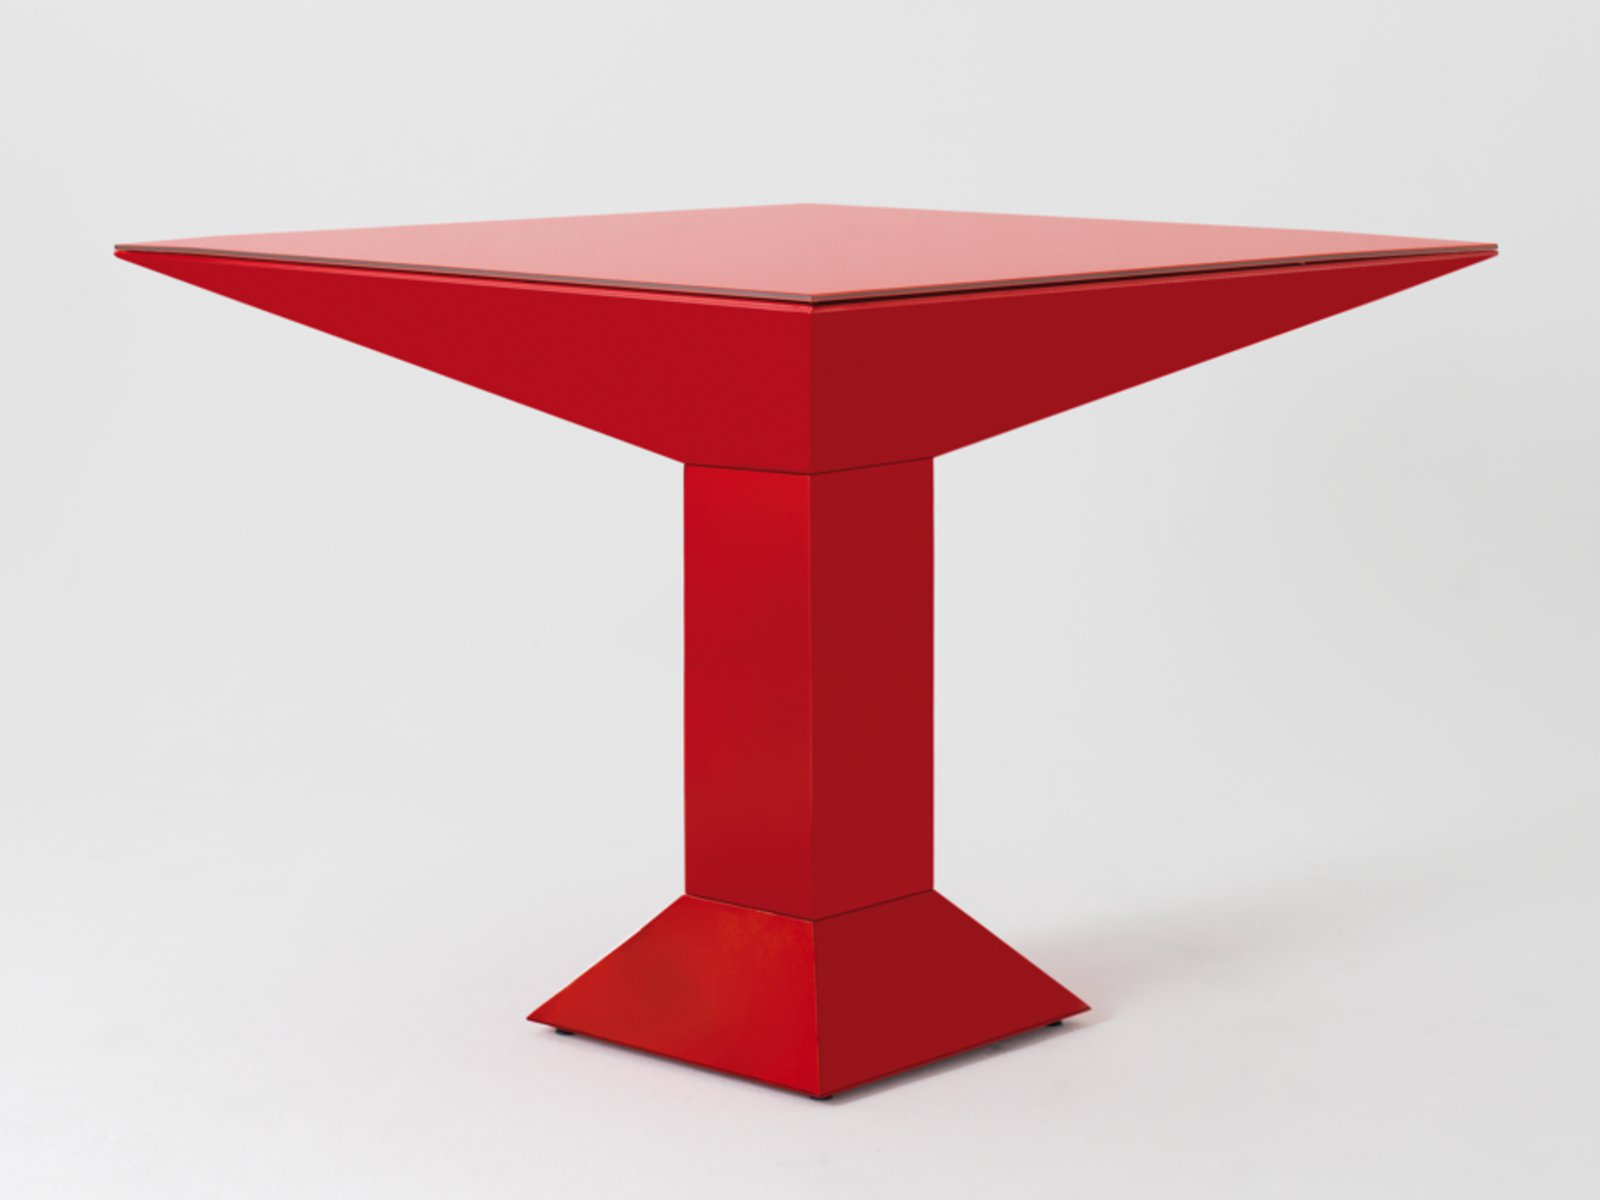 Table carr e design mettsass by bd barcelona design - Table carree design ...